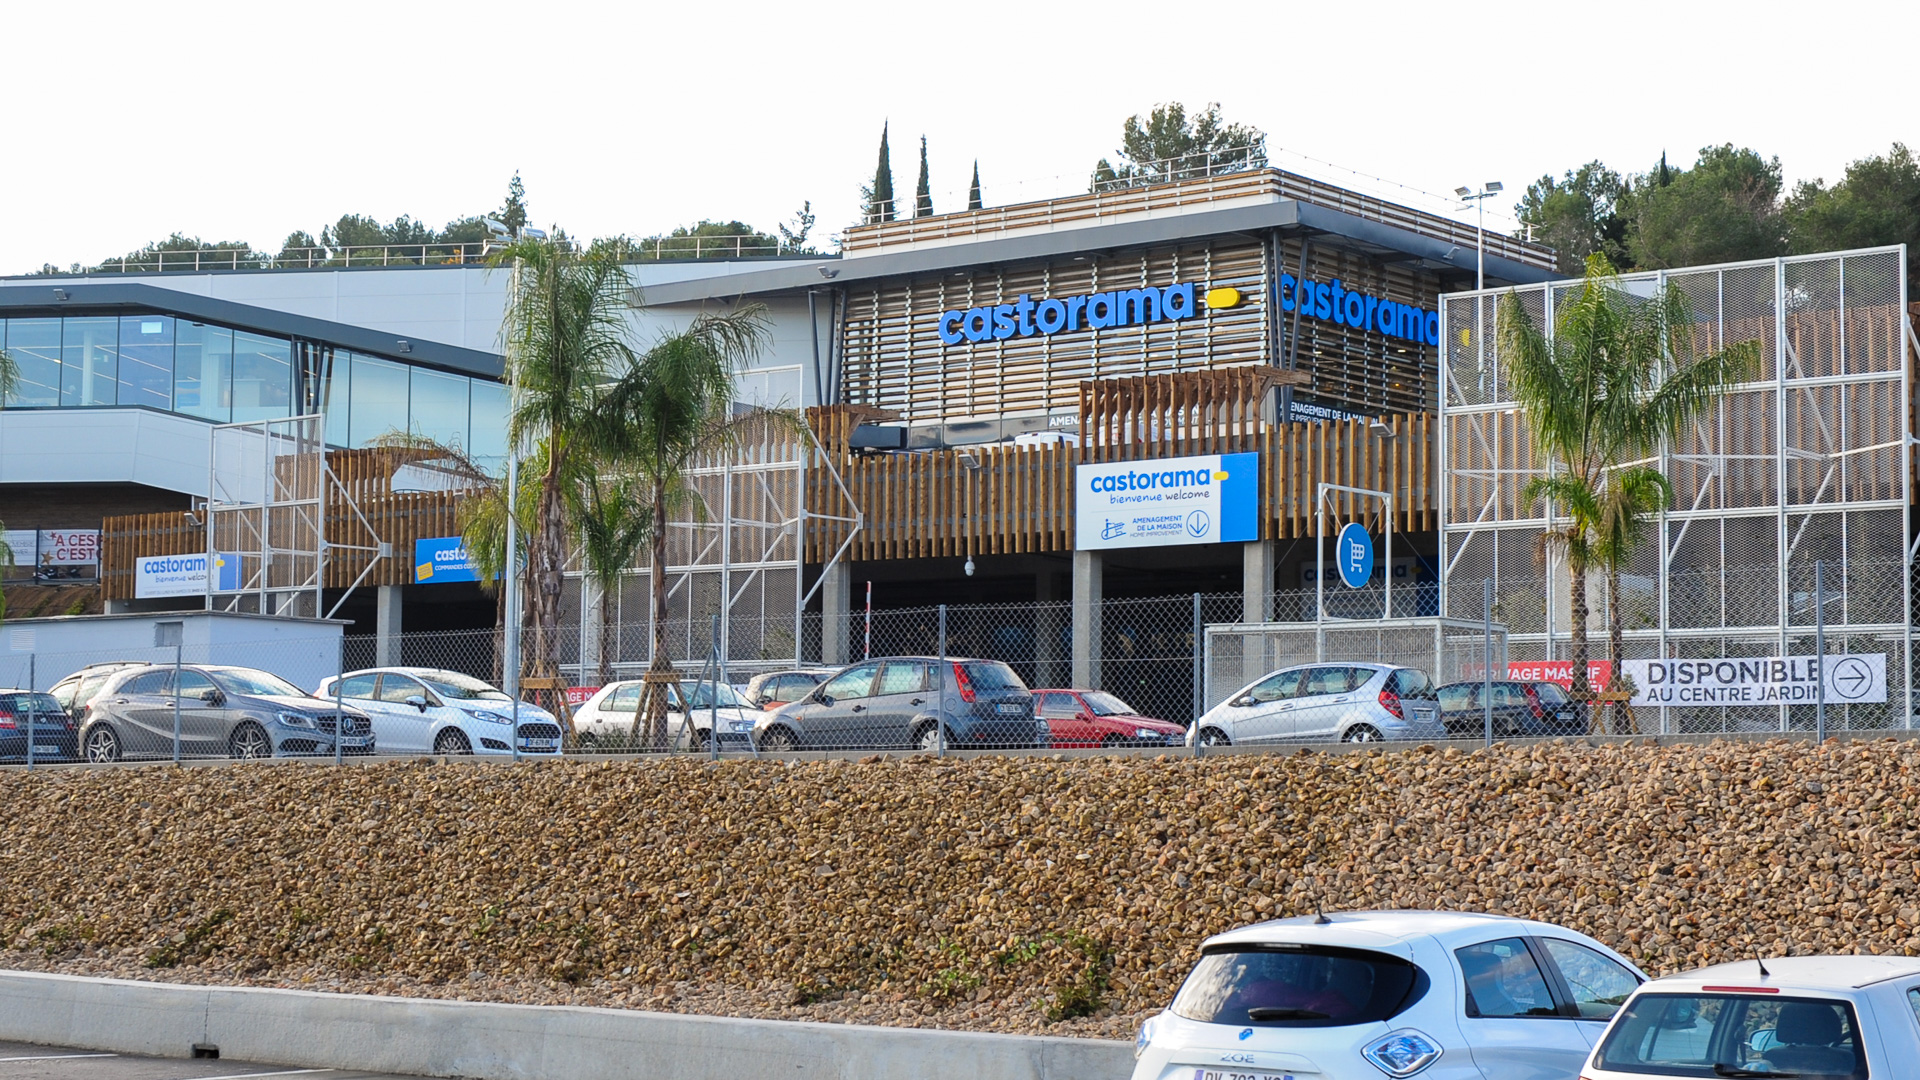 Castorama France re-opens its Antibes store after 2 year long green building renovation